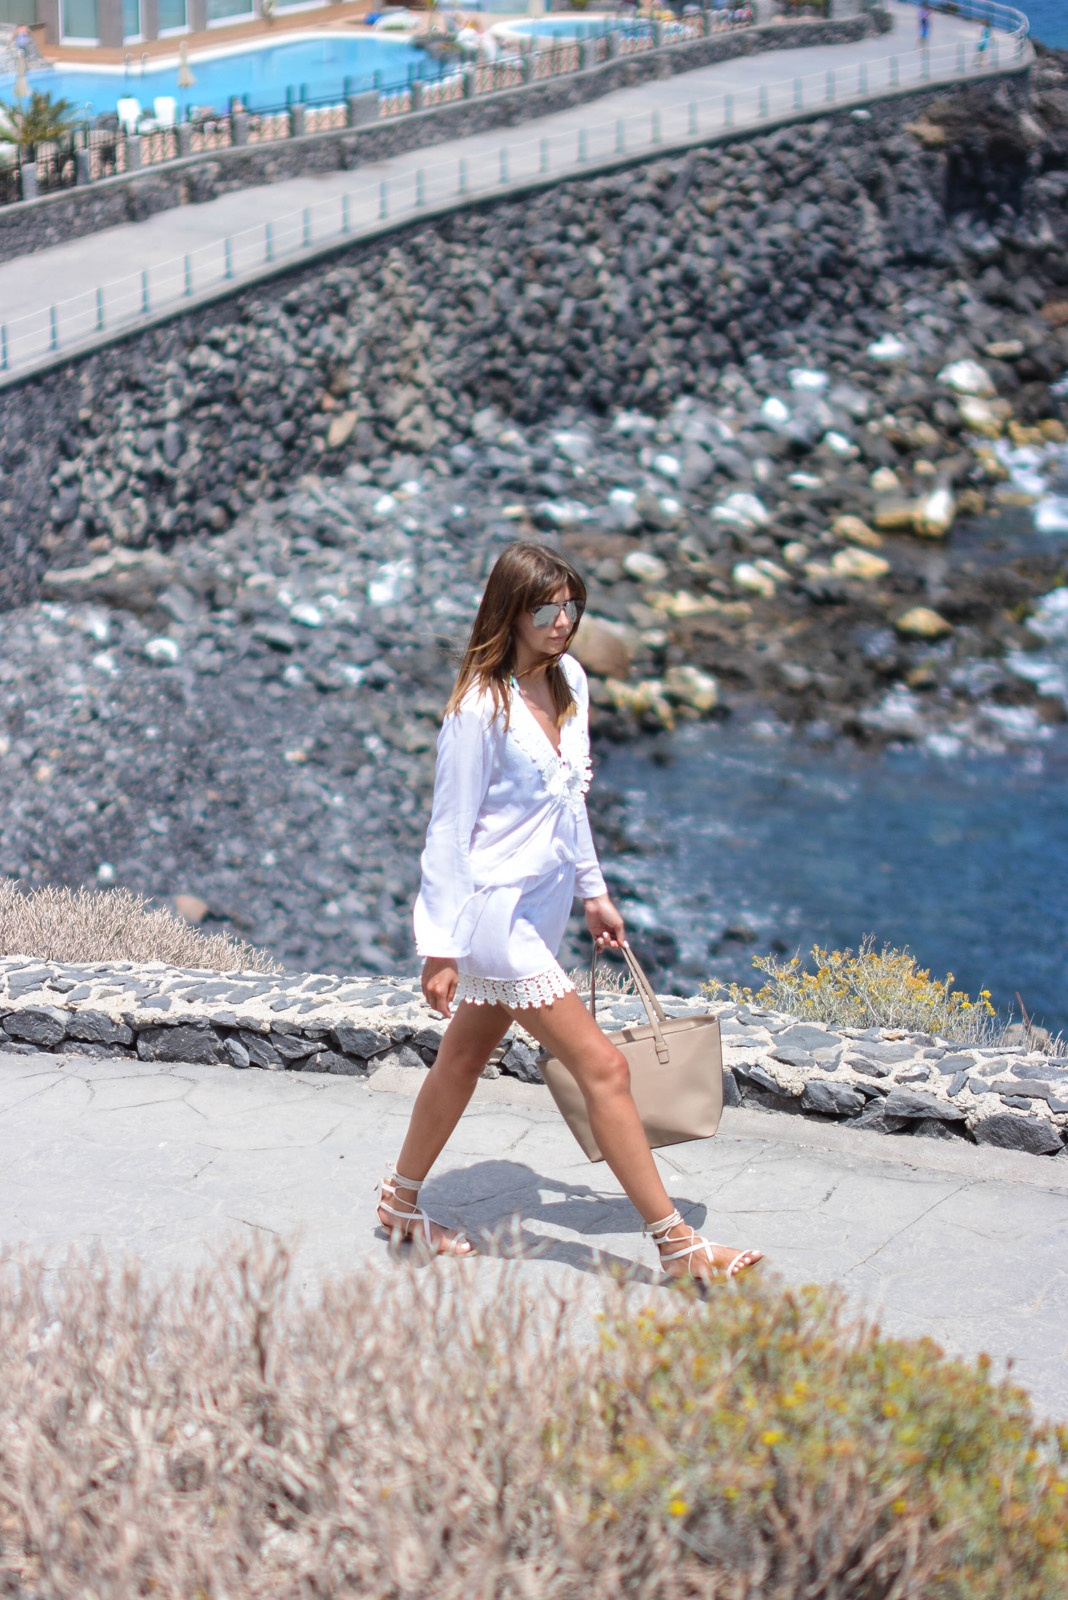 EJSTYLE - Emma Hill wears Cool Change Chloe Romance white tunic from Beach Cafe UK, Mango tie gladiator sandals, Mango saffiano tote shopper bag, summer style, holiday style